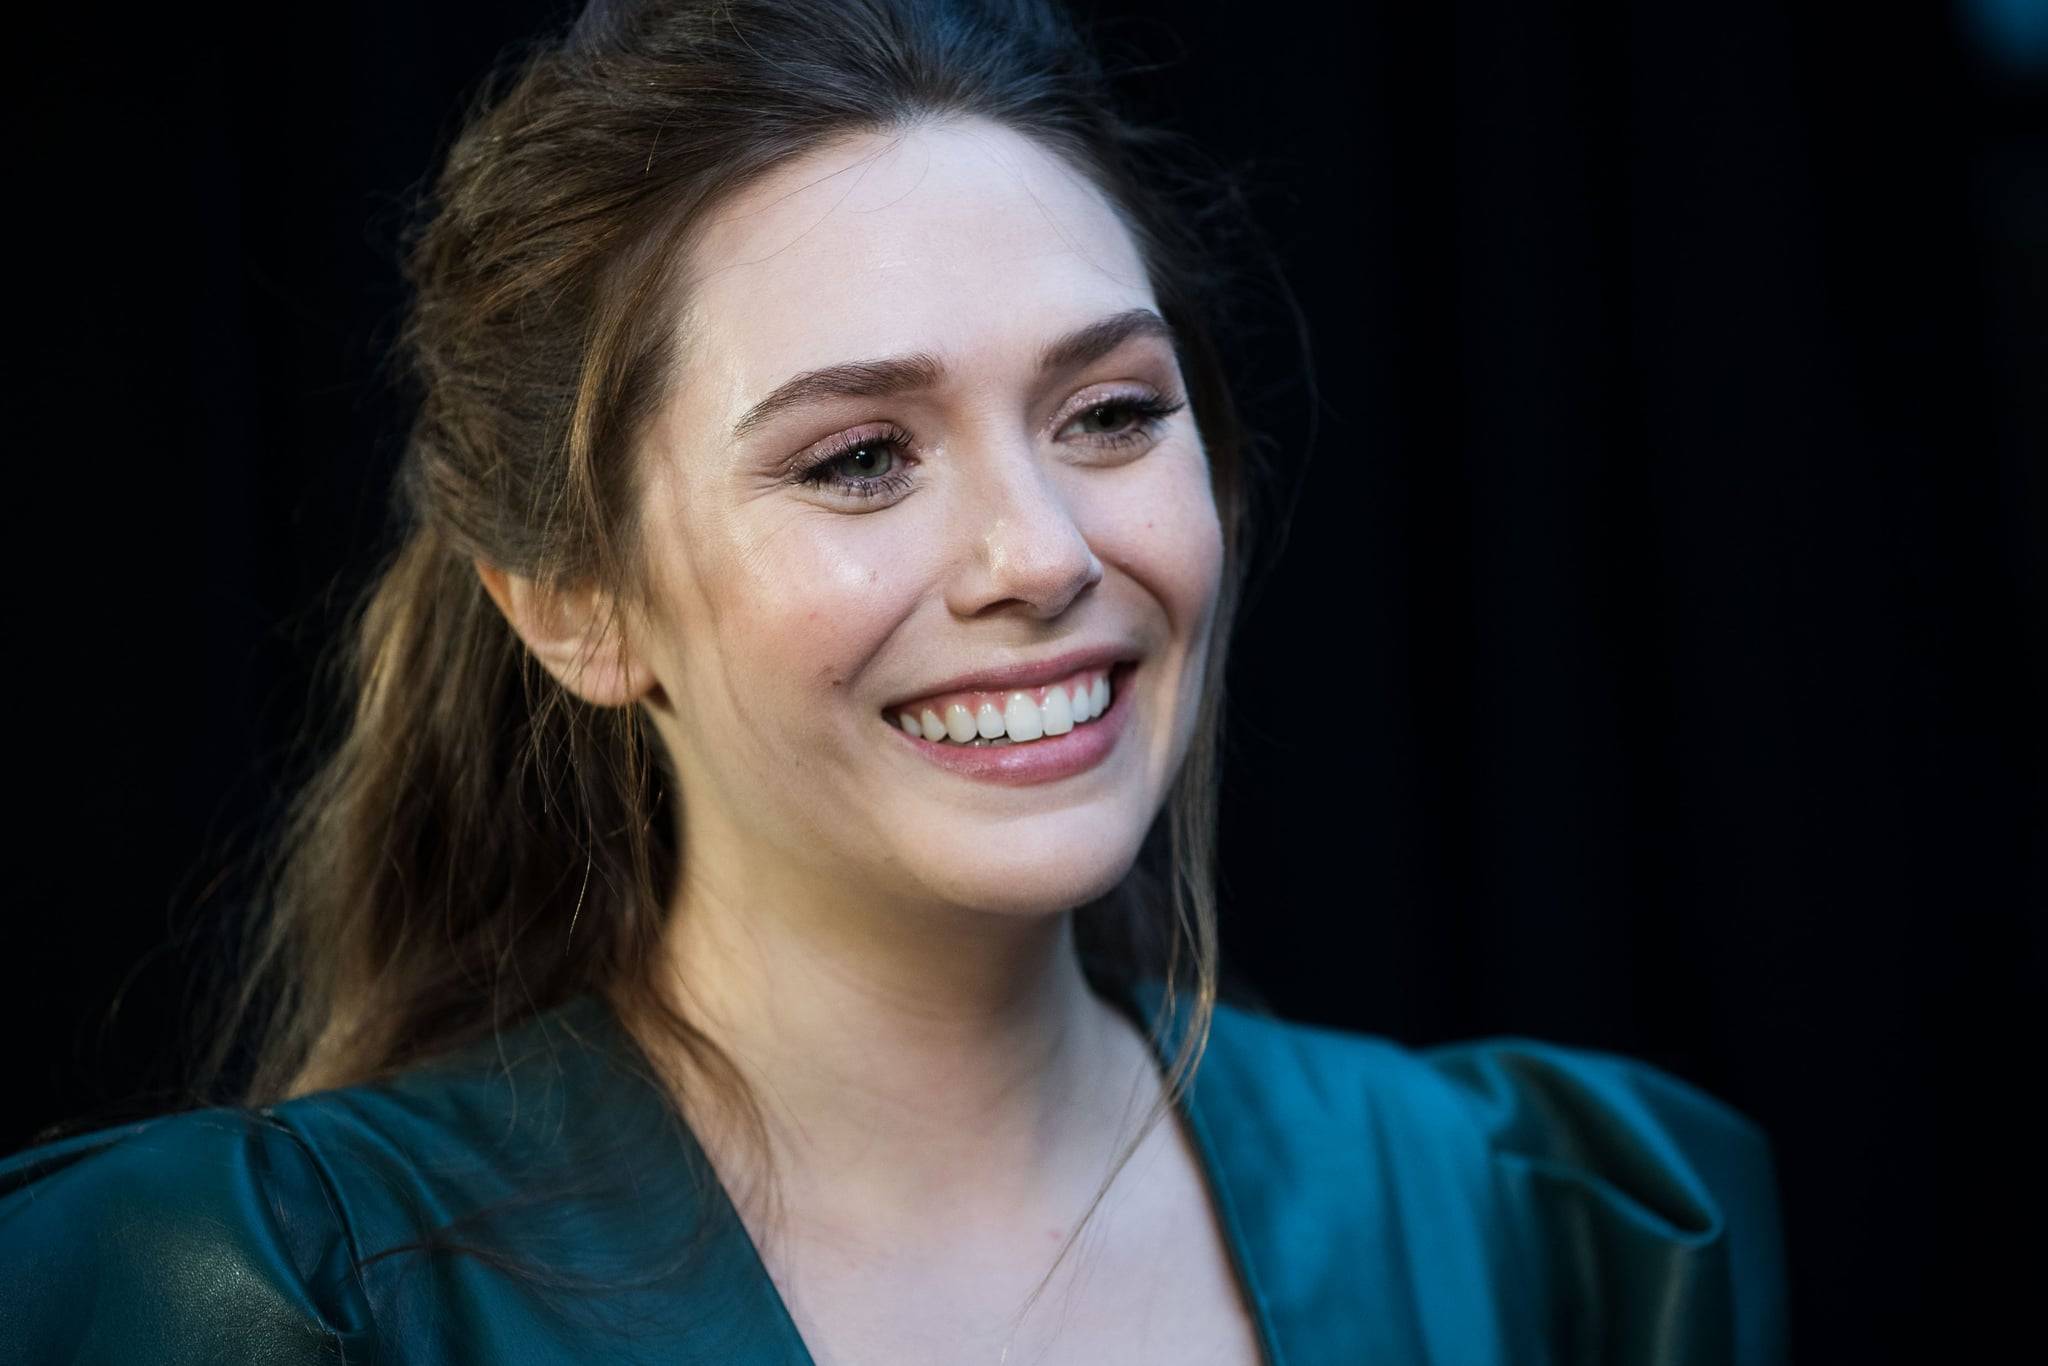 LONDON, ENGLAND - APRIL 08:  Elizabeth Olsen attends the UK Fan Event to celebrate the release of Marvel Studios' 'Avengers: Infinity War' at The London Television Centre on April 8, 2018 in London, England.  (Photo by Gareth Cattermole/Gareth Cattermole/Getty Images for Disney)